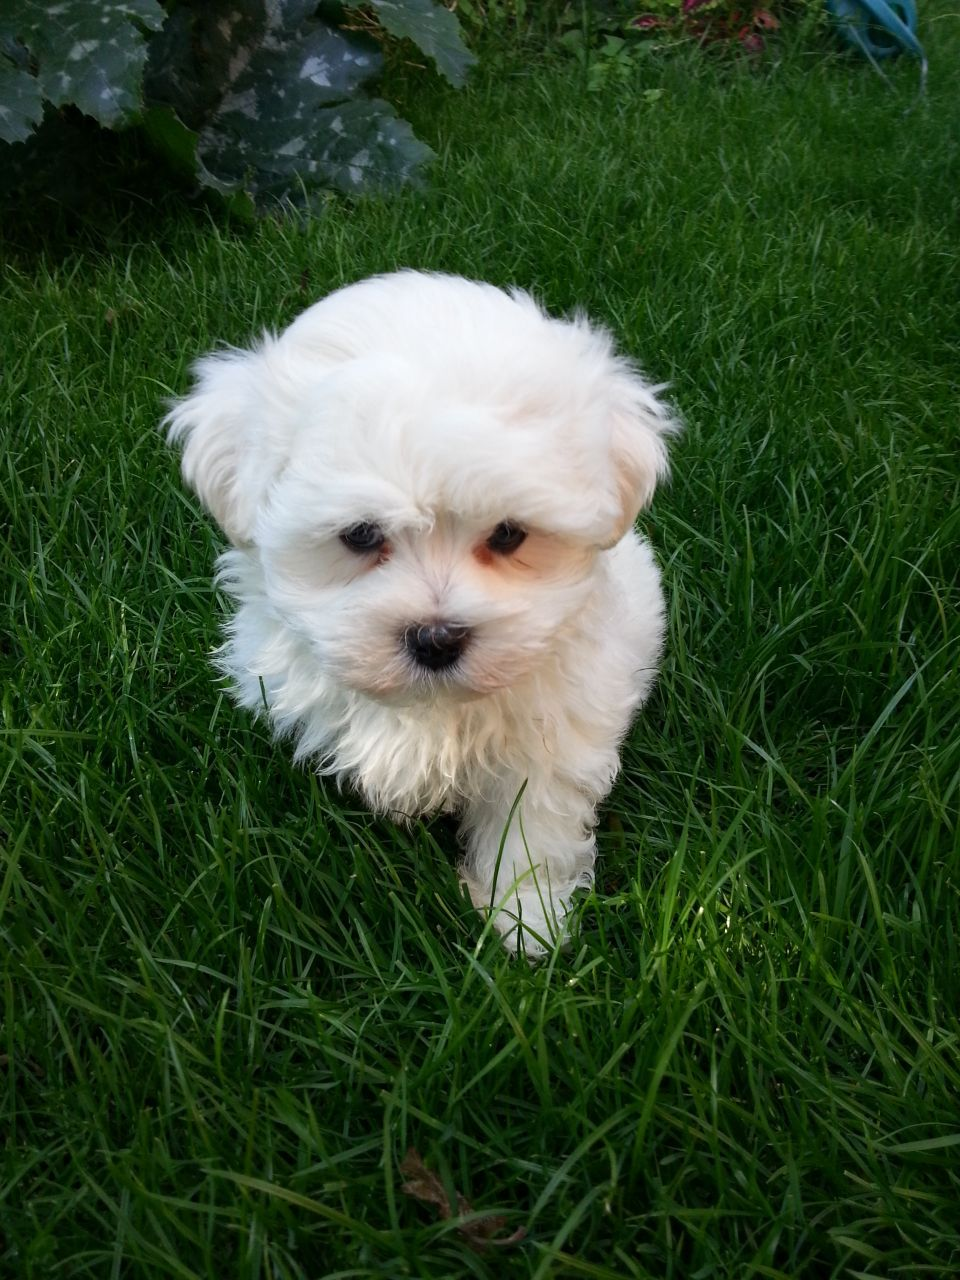 Cute Small Puppies Cute And Small Maltese Puppy Hinckley Cute Puppies Cute Animals Maltese Puppy